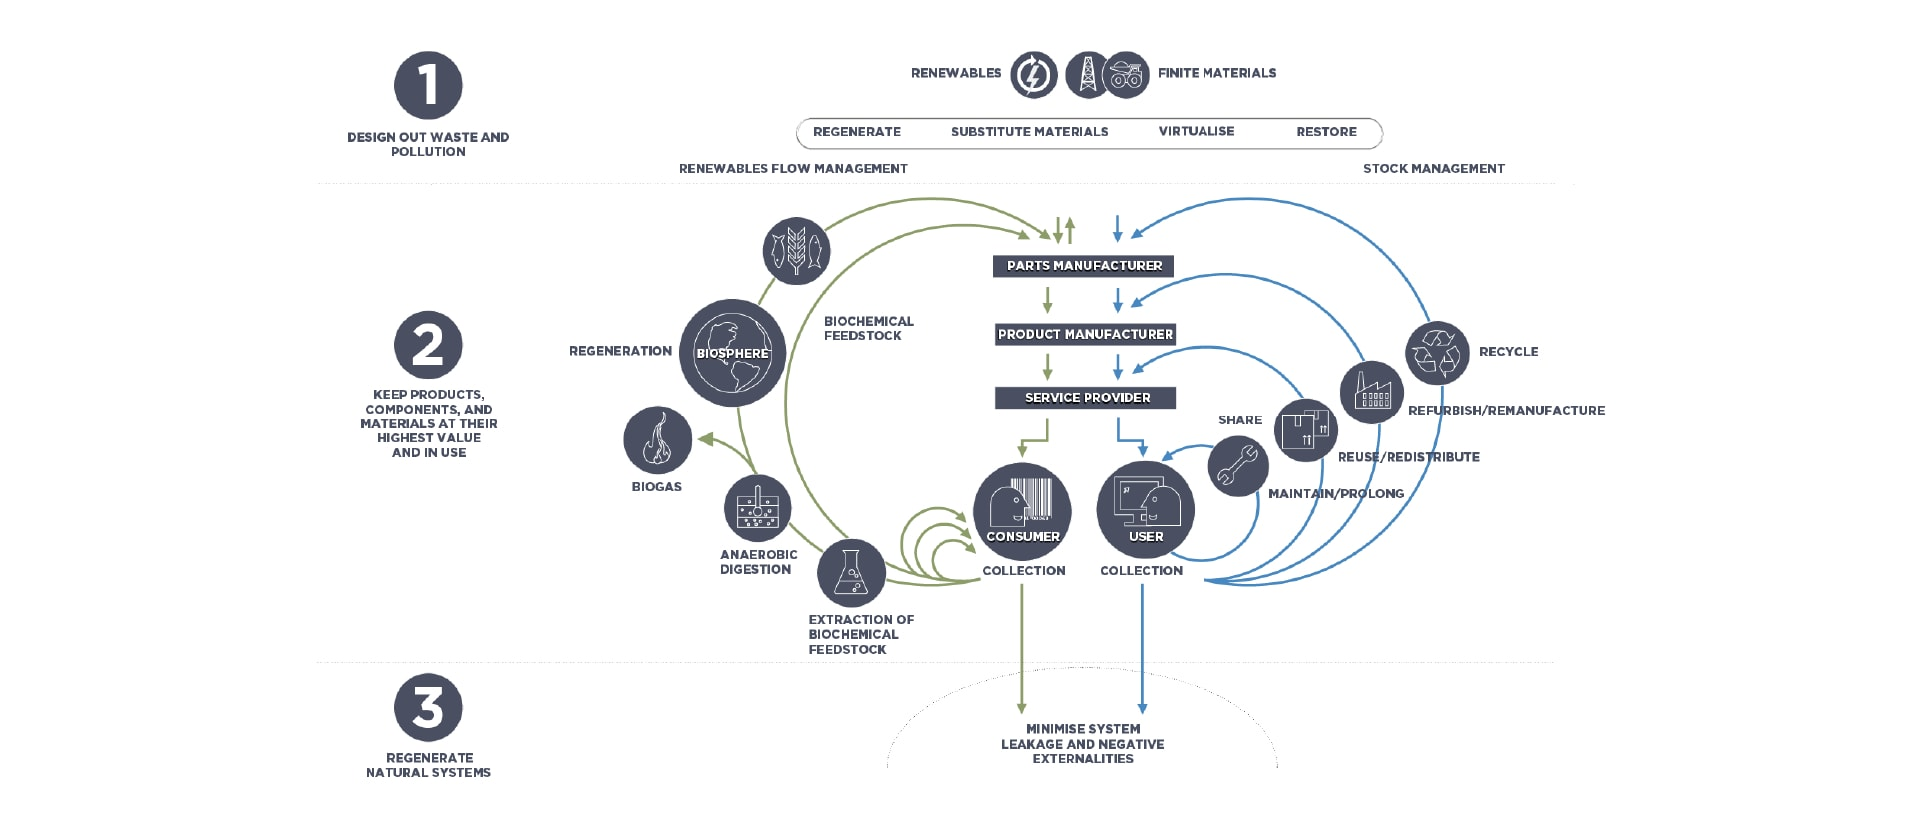 Graphic showing how to design out waste and pollution, keep products, components, and materials at their highest value and in use, and regenerate natural systems.